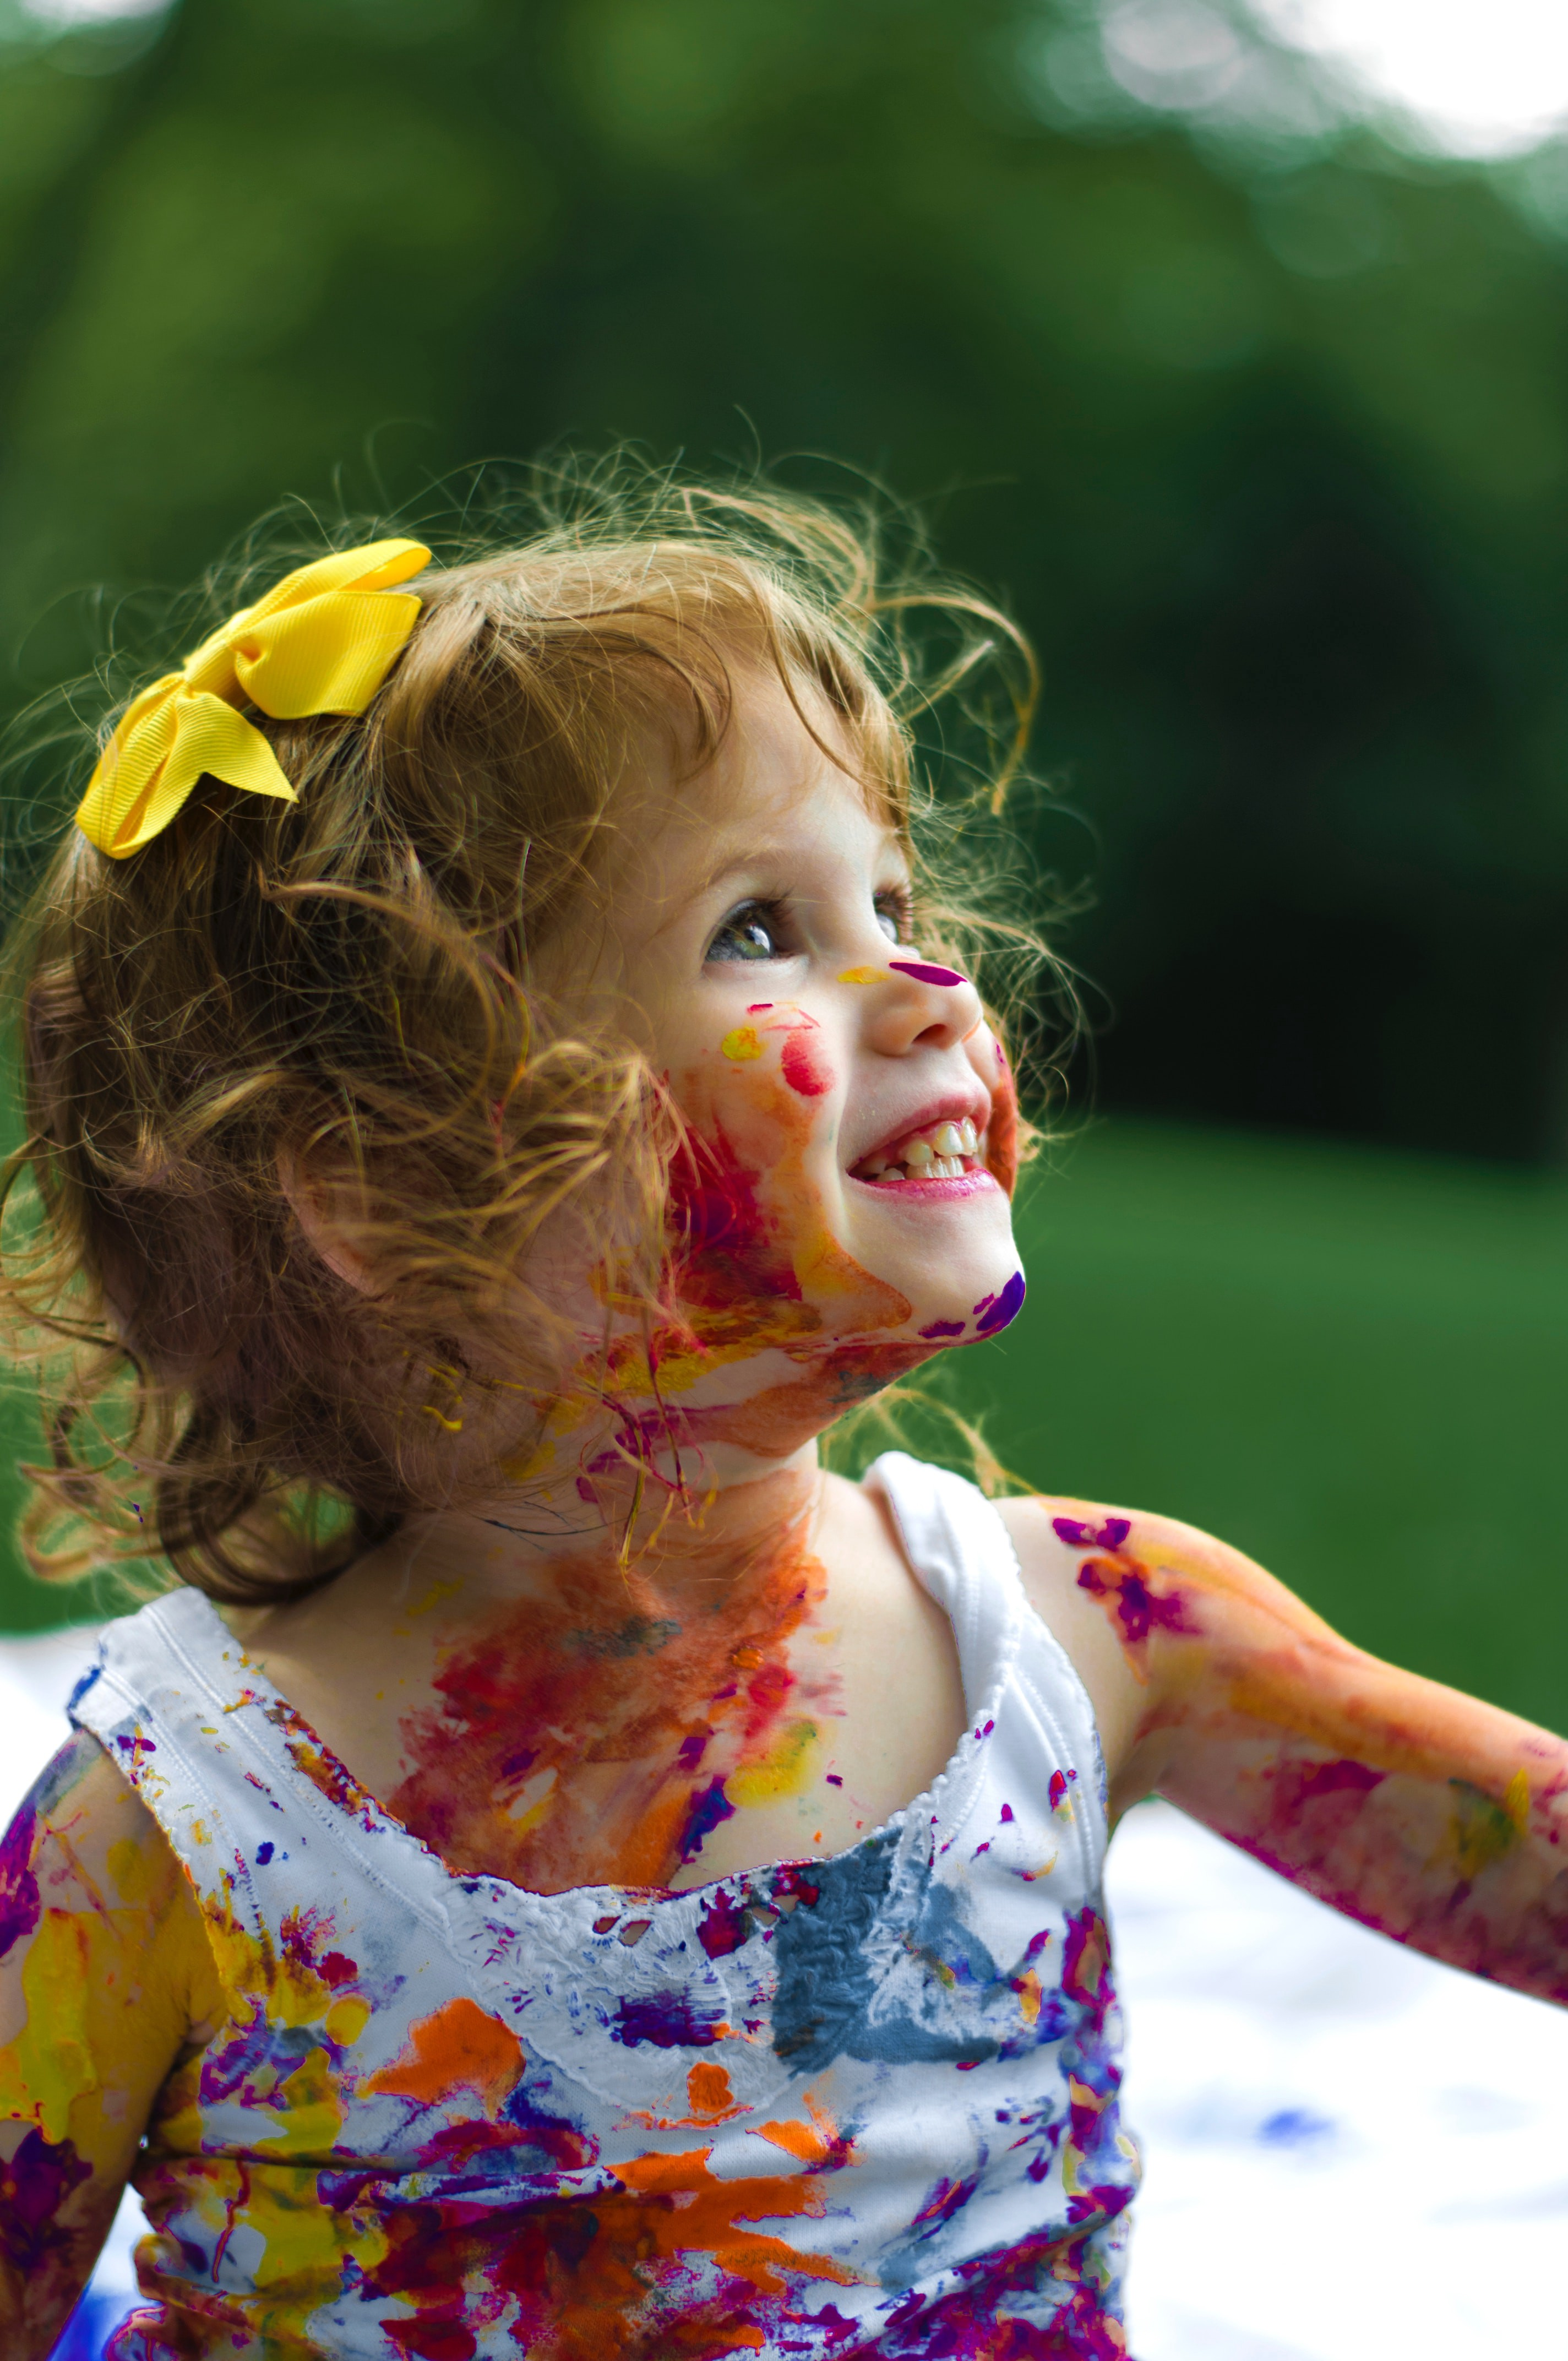 Smiling toddler, covered with paint, sitting outside on a blanket